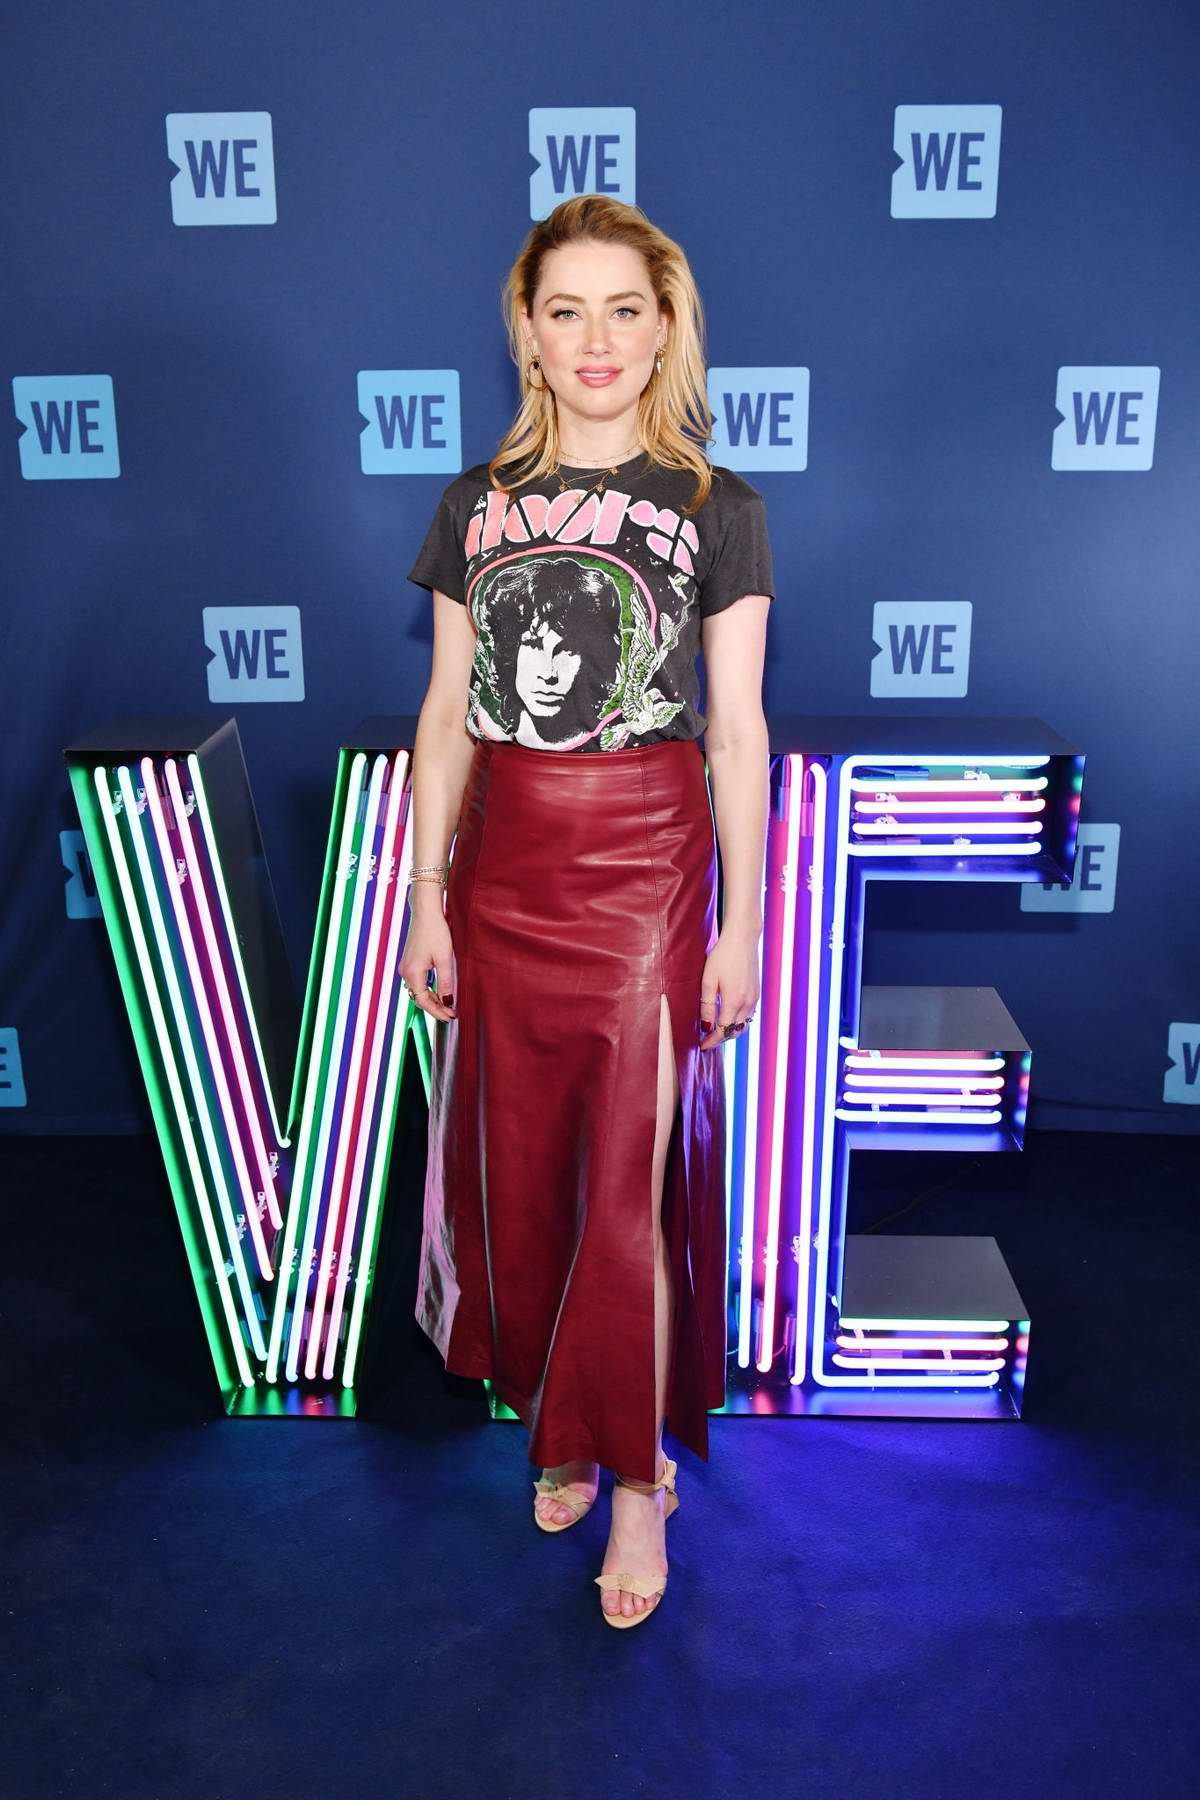 Amber Heard attends the WE Day UN 2019 at Barclays Center in Brooklyn, New York City